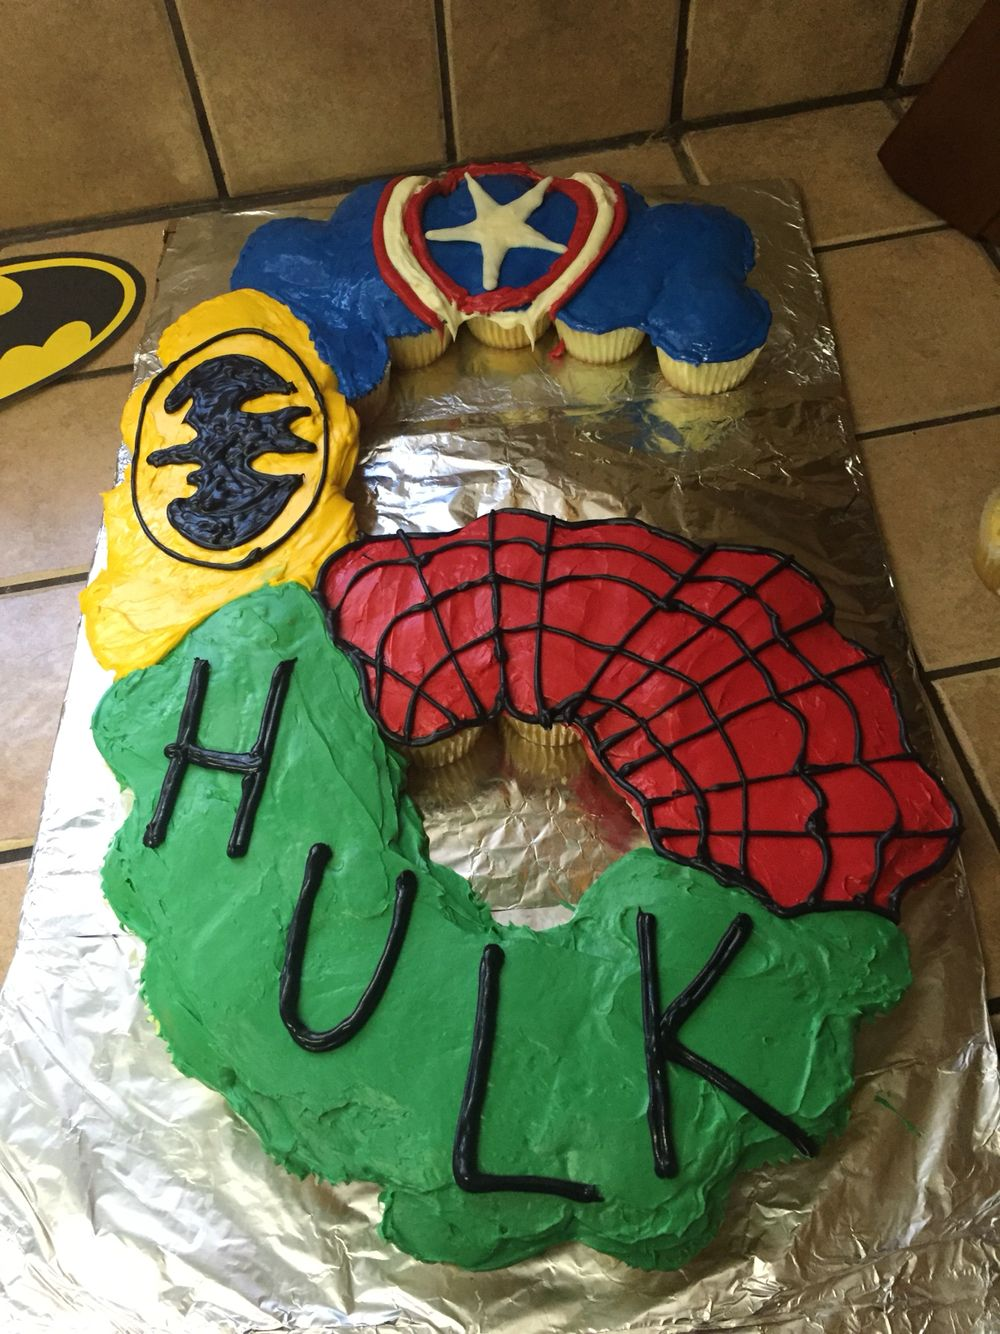 Superhero Cake Made From Cupcakes For A 6 Year Olds Birthday Party Captain America